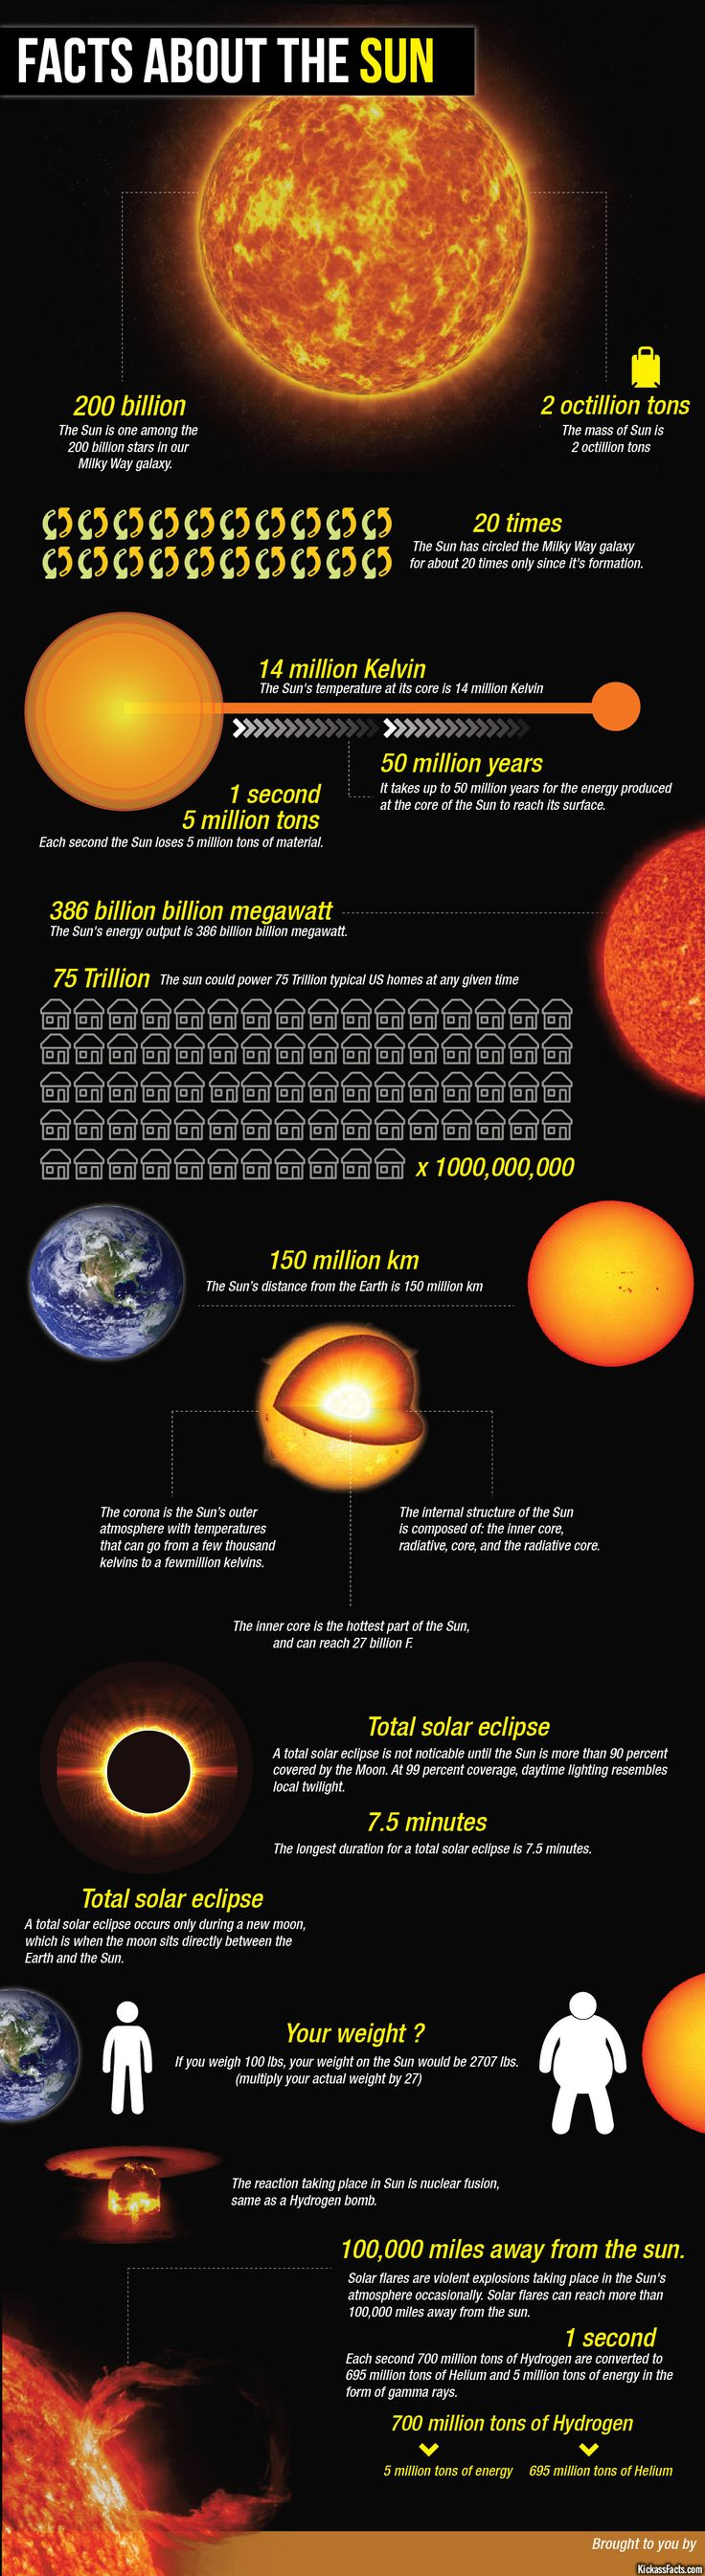 Interesting Facts About the Sun (Infographic) | CosmosUp